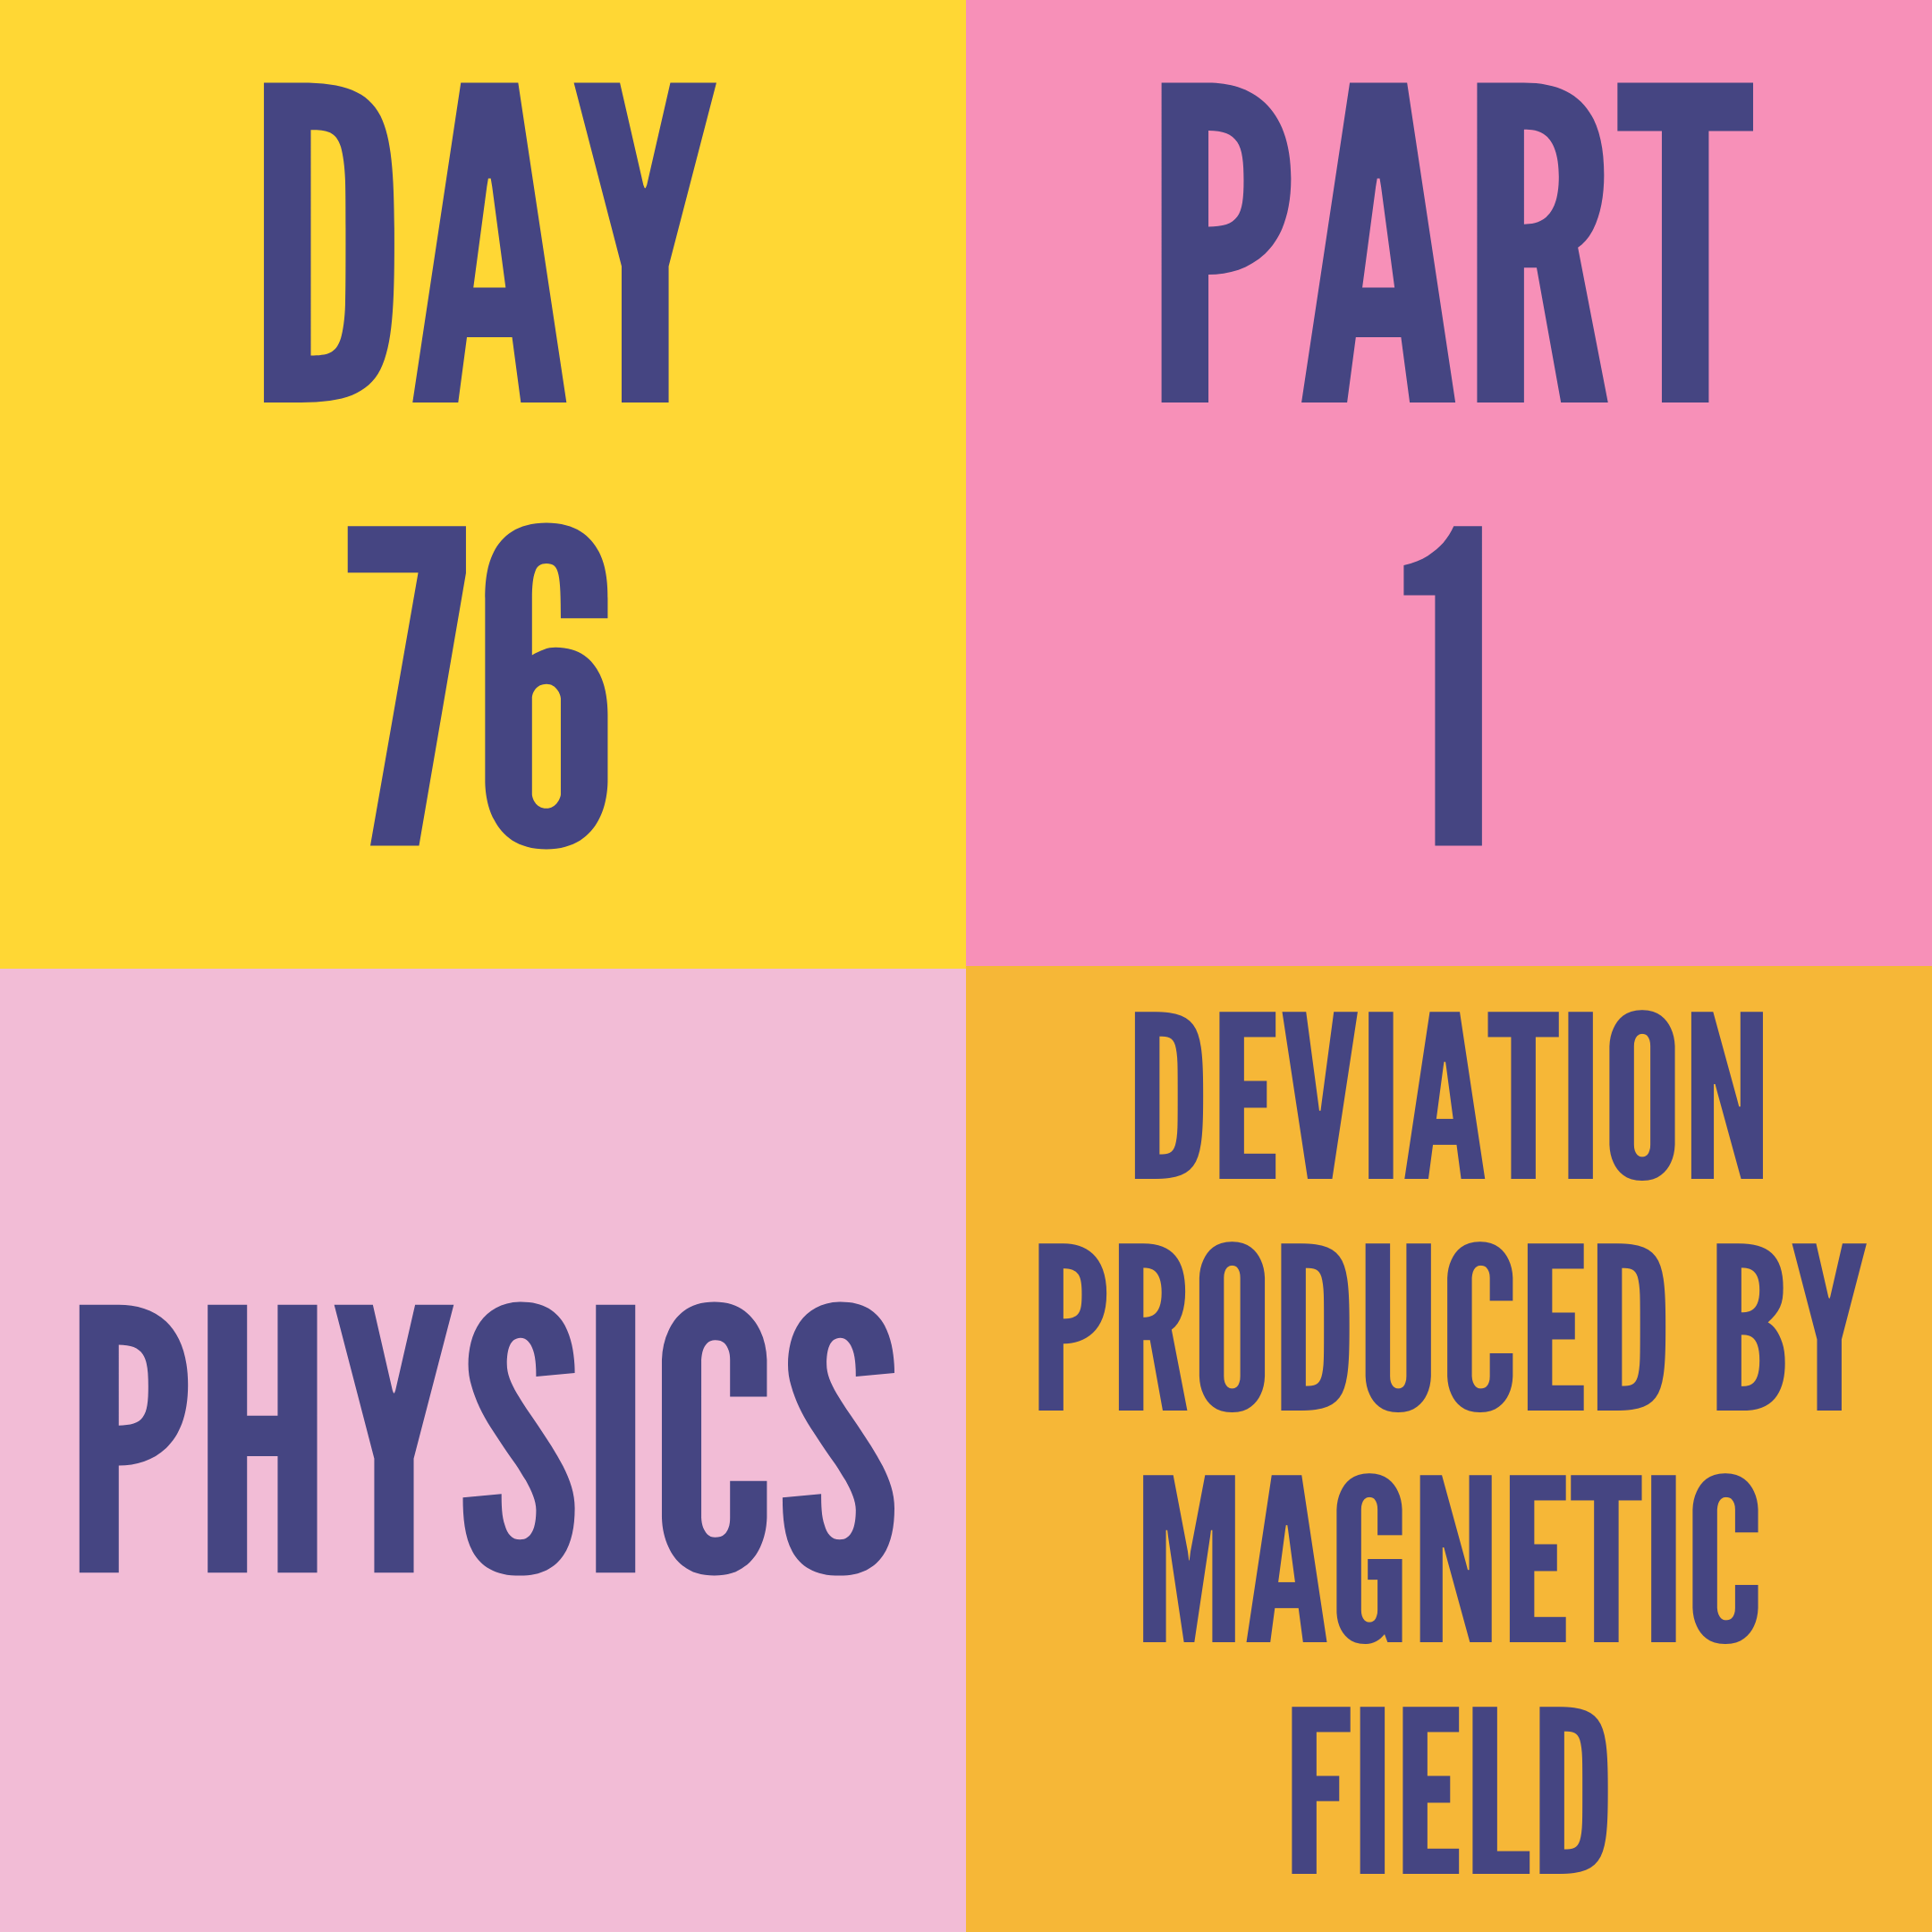 DAY-76 PART-1 DEVIATION PRODUCED BY MAGNETIC FIELD